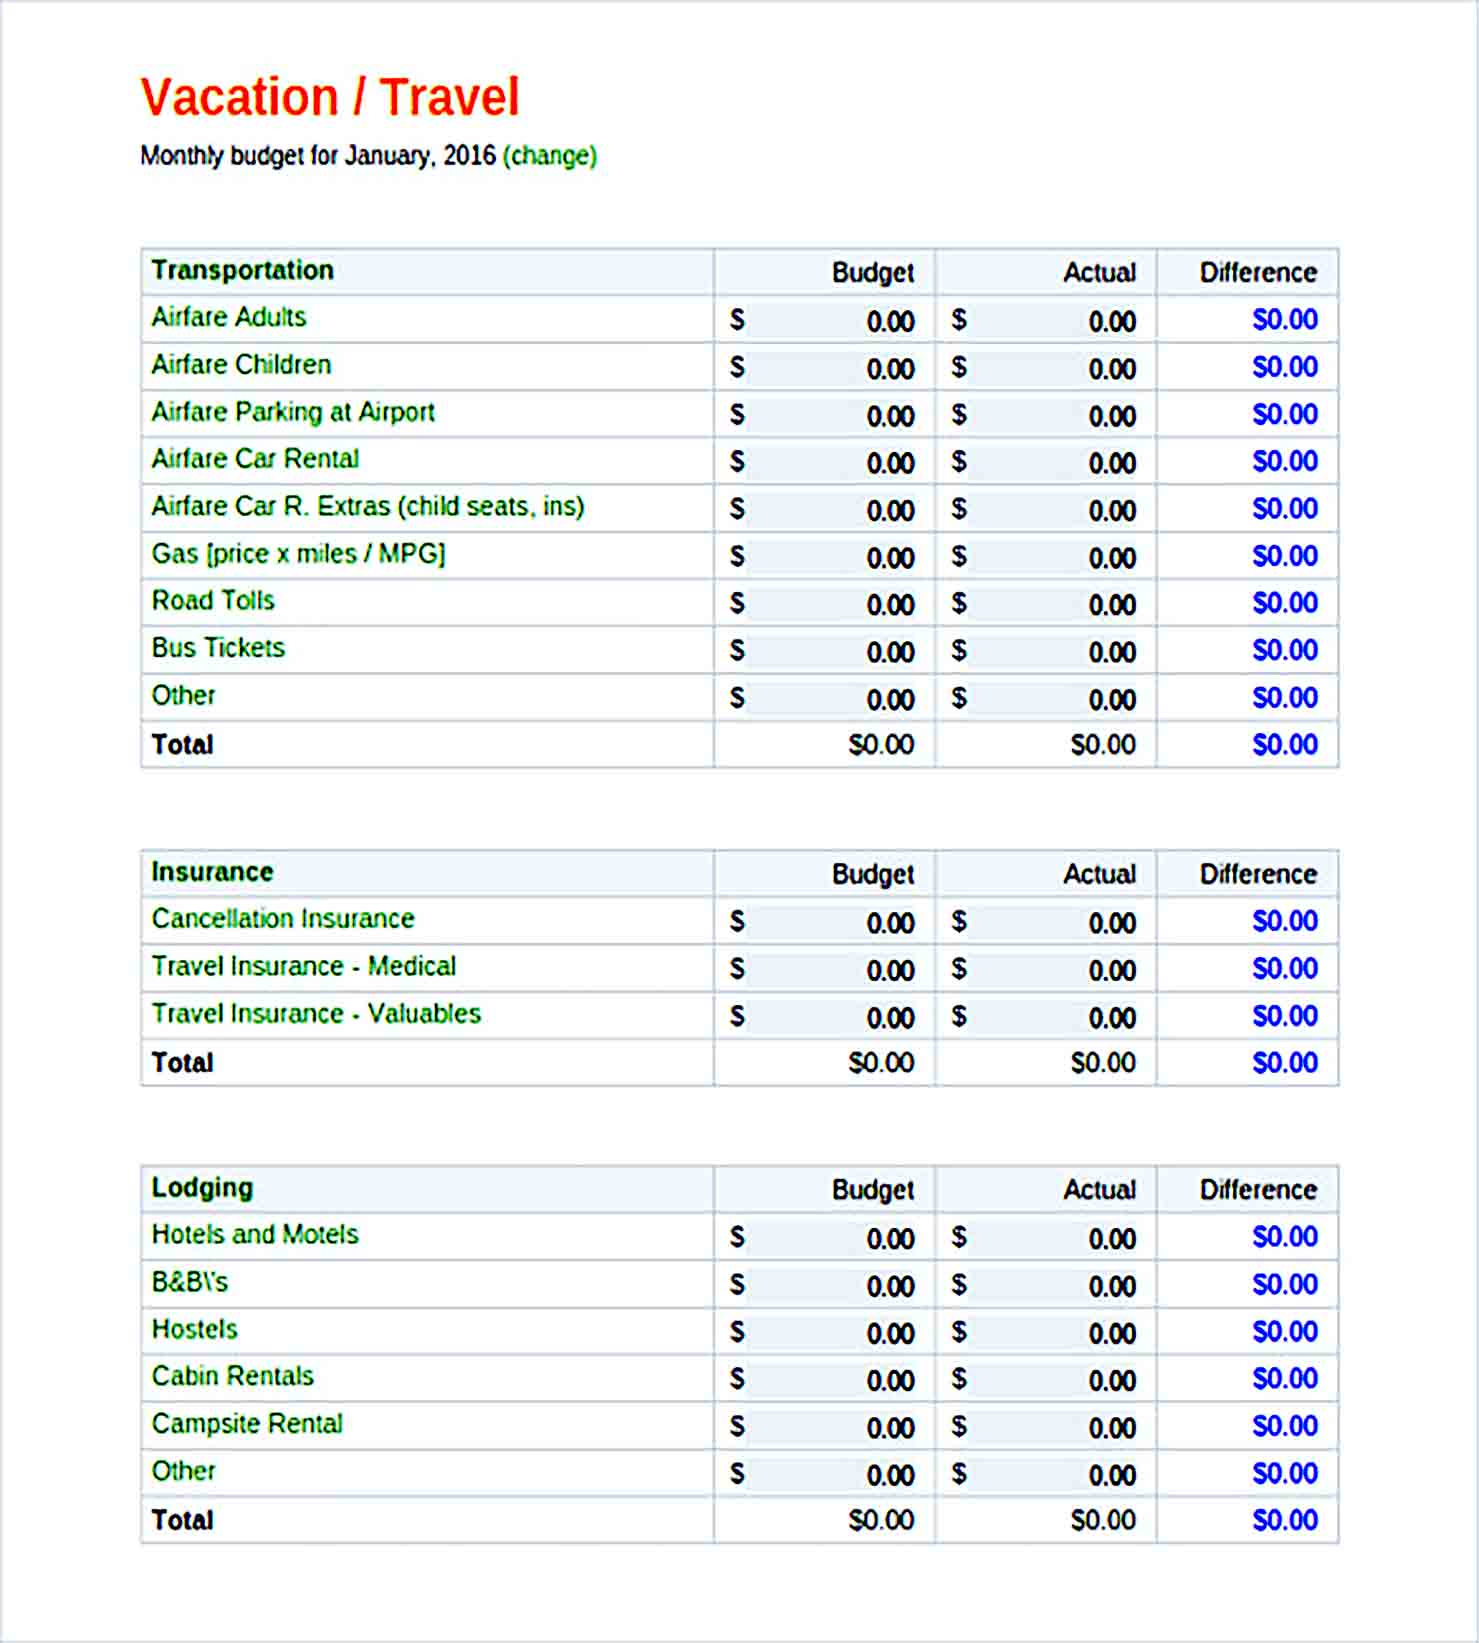 Sample vacation budget form